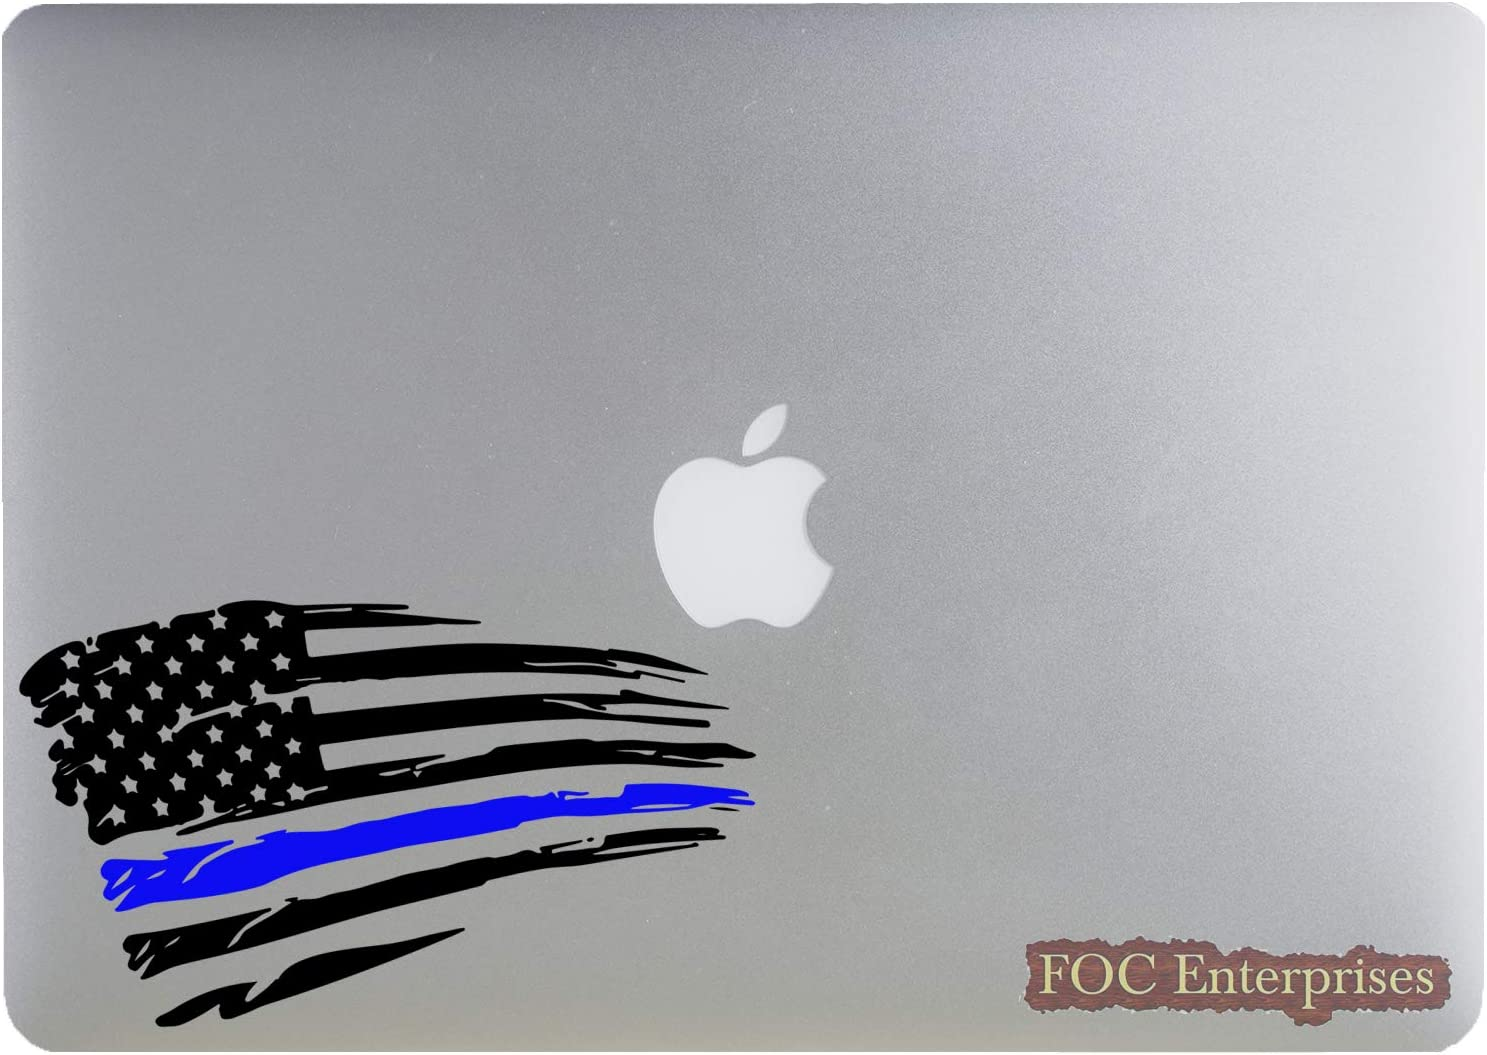 "Distressed American Flag Thin Blue Line US Flag for Support Police Law Enforcement Vinyl Die-Cut Sticker for MacBook/Laptop, Car/Truck, Window/Bumper - Size Approx. 5.5"" inches Longer Side"